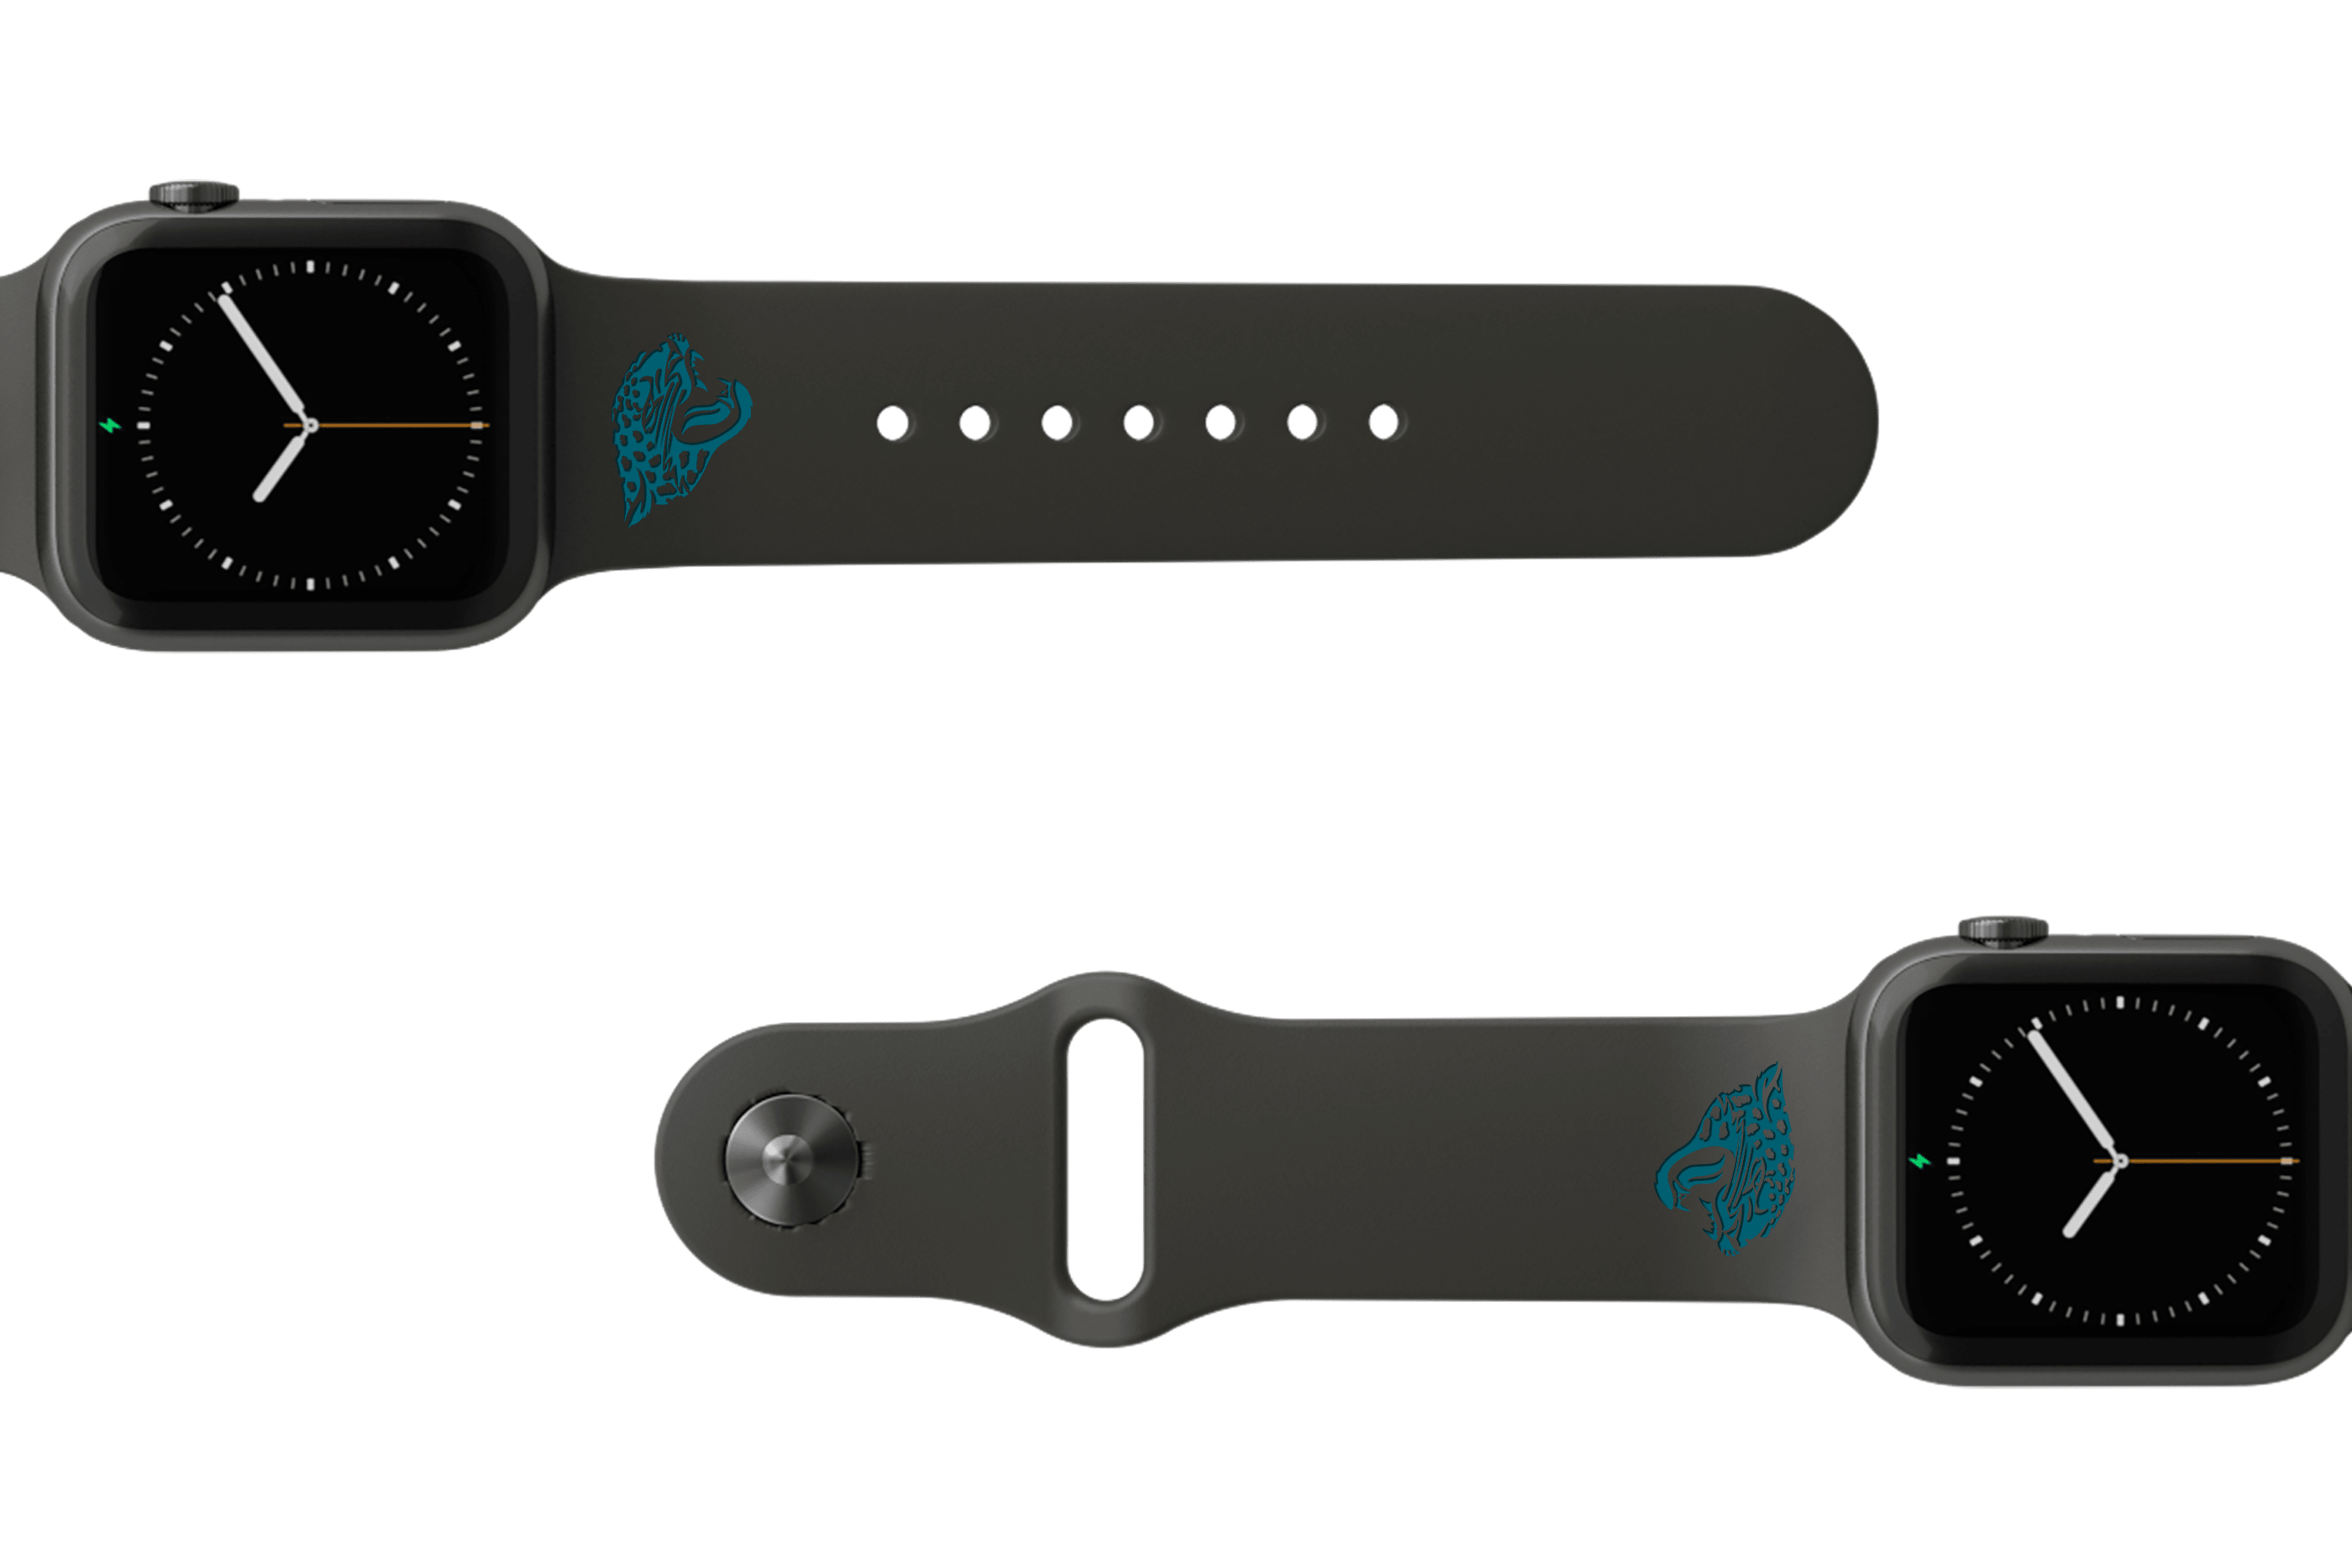 NFL Jacksonville Jaguars Black   apple watch band with gray hardware viewed from top down